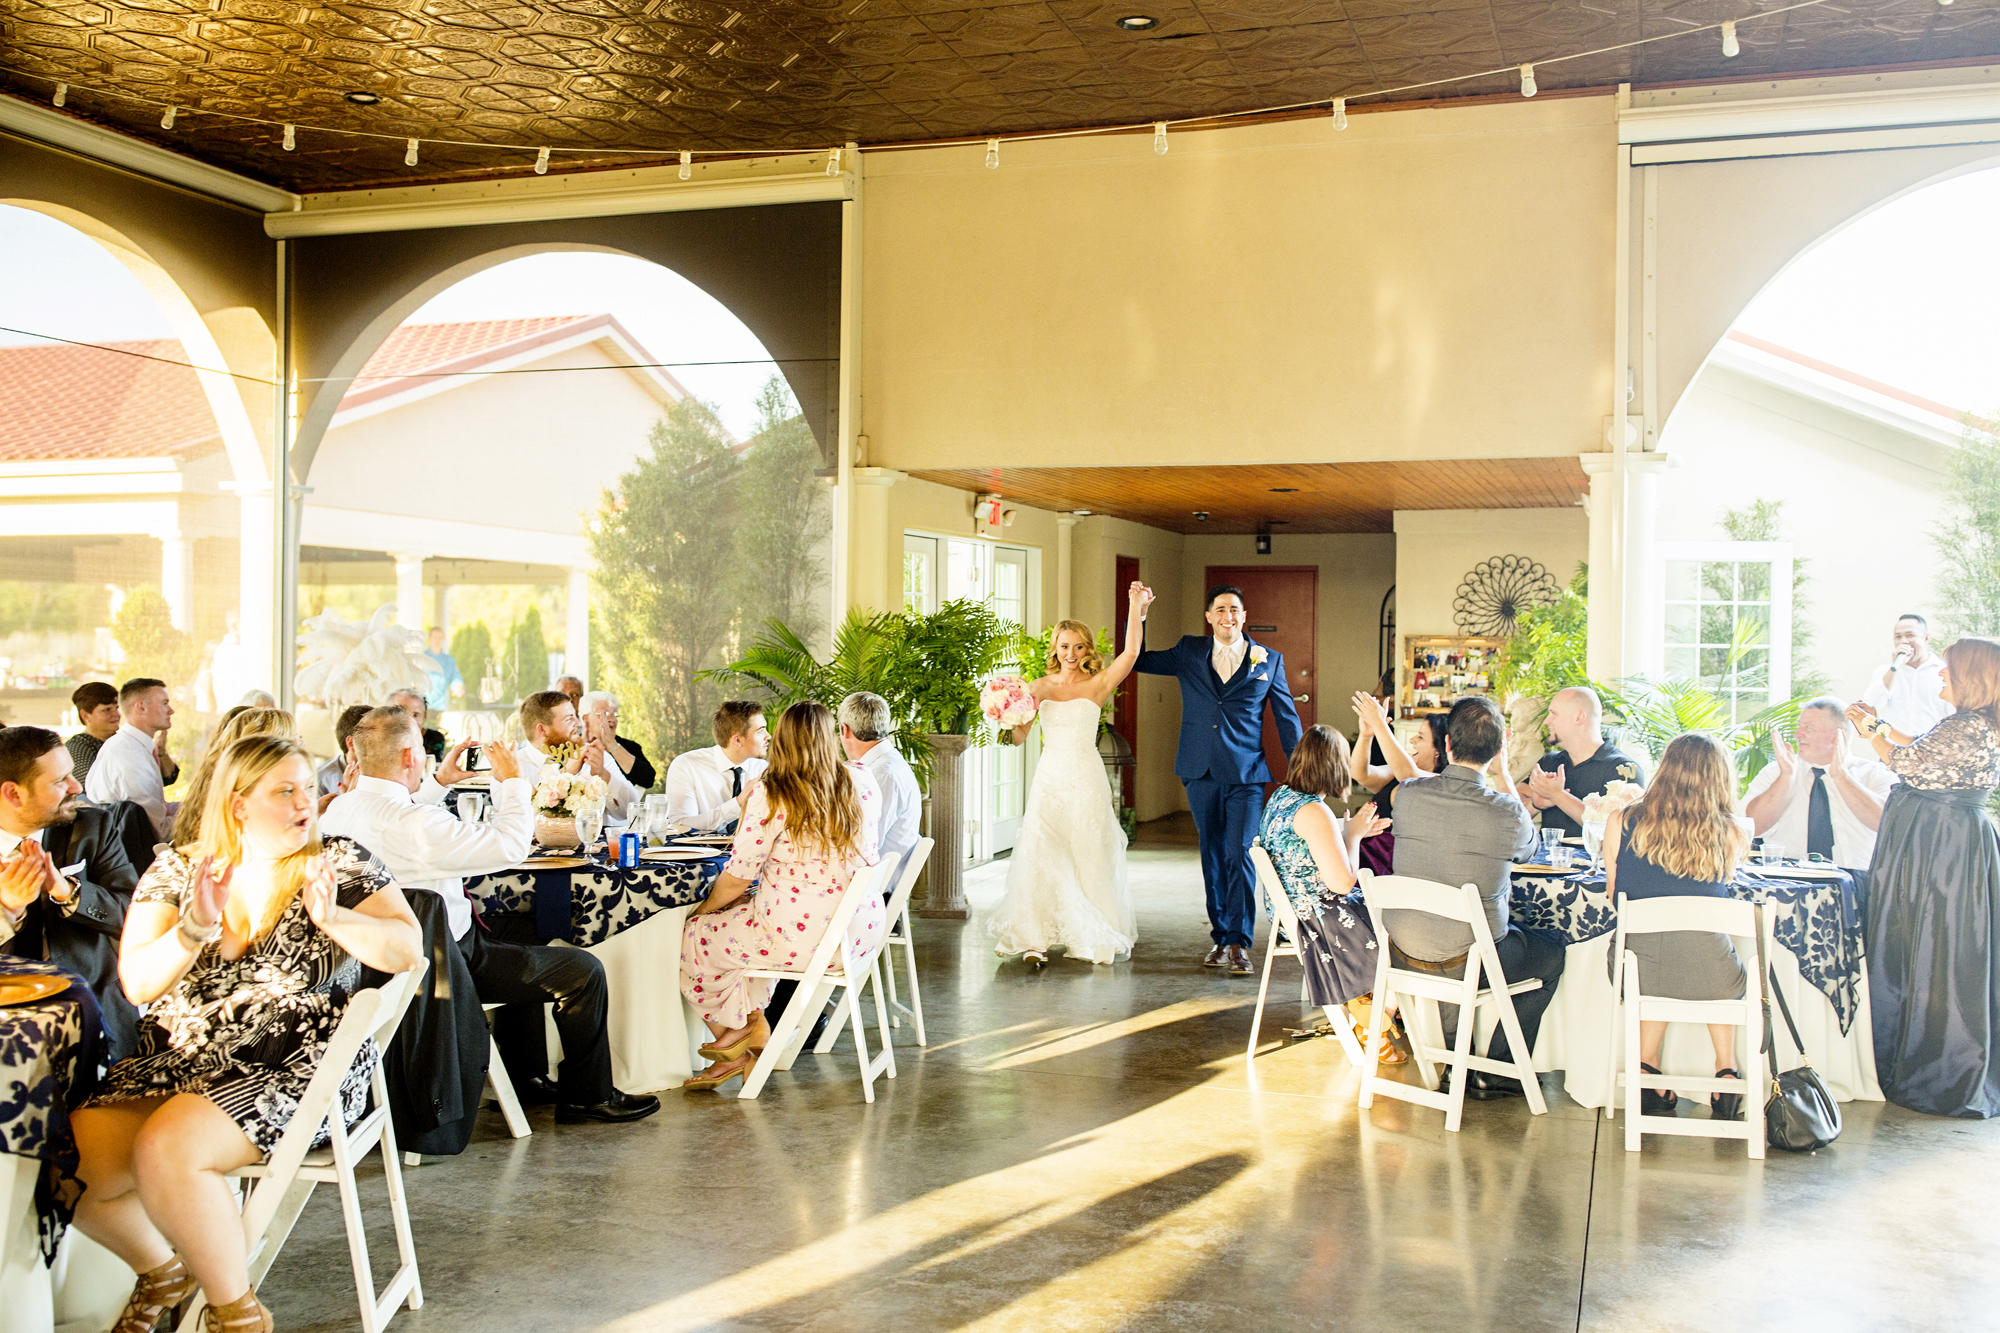 Seriously_Sabrina_Photography_Dayton_Ohio_Great_Gatsby_Wedding_Cedar_Springs_Pavillion_Harper_78.jpg